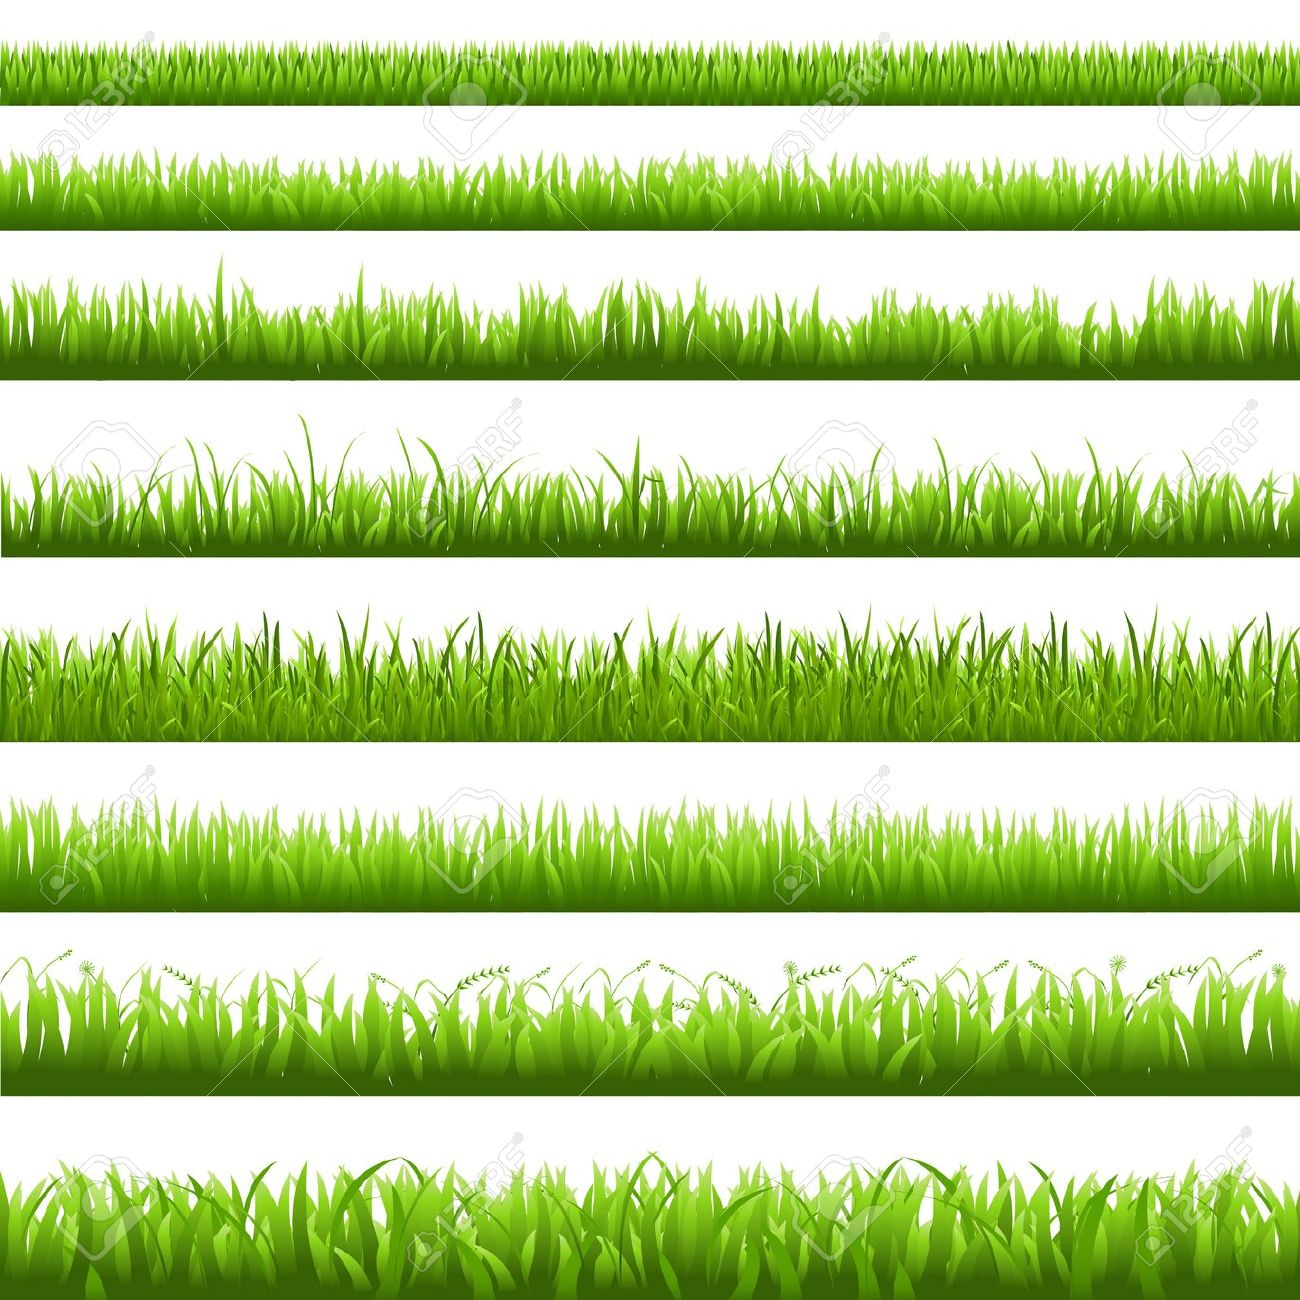 9,419 Turf Stock Vector Illustration And Royalty Free Turf Clipart.